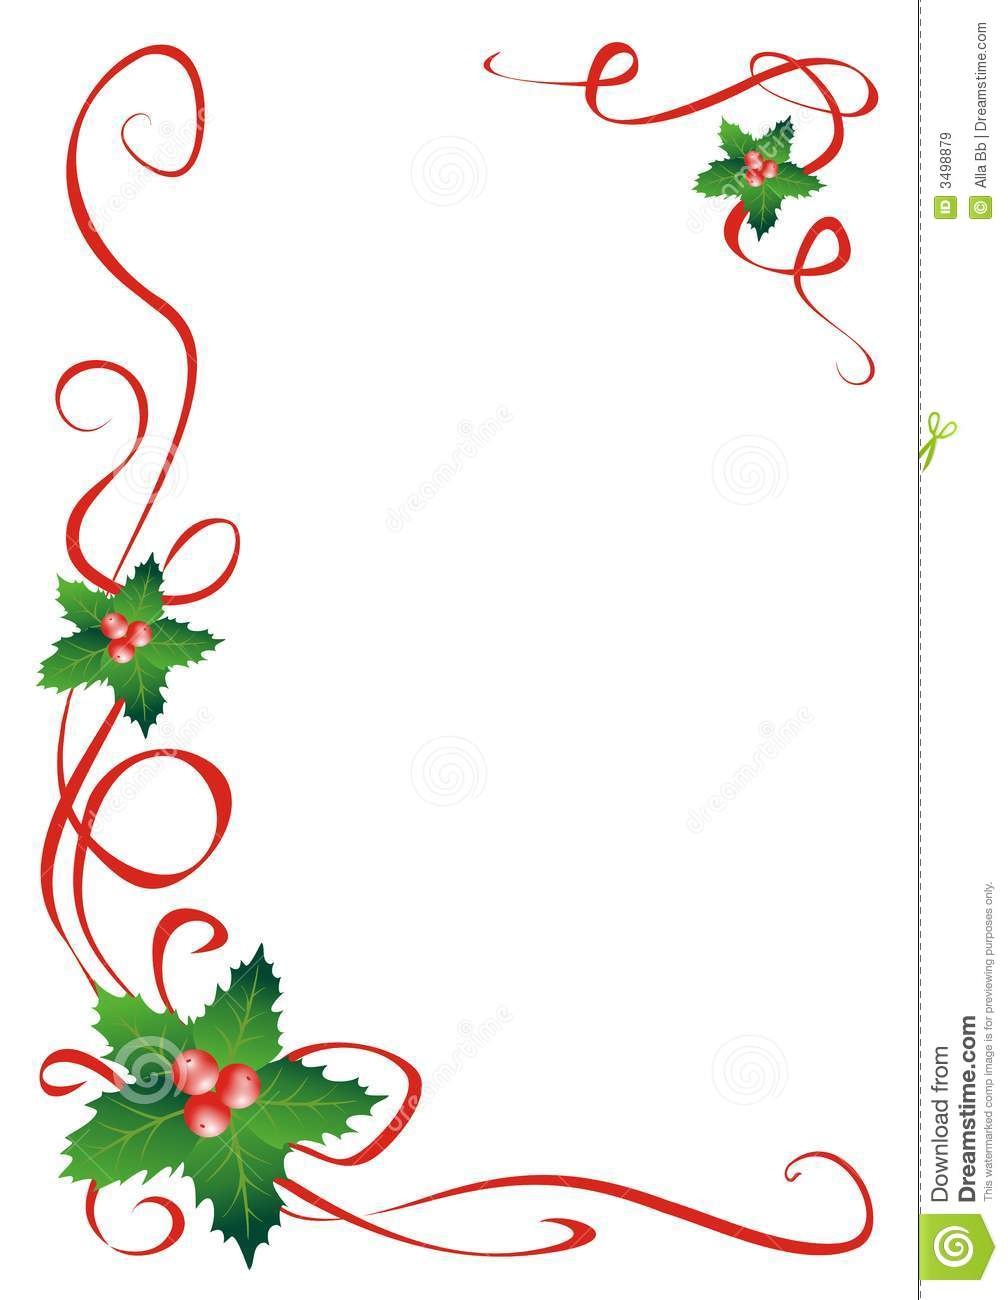 Christmas Holly Border Decoration Royalty Free Stock Images - Image ...